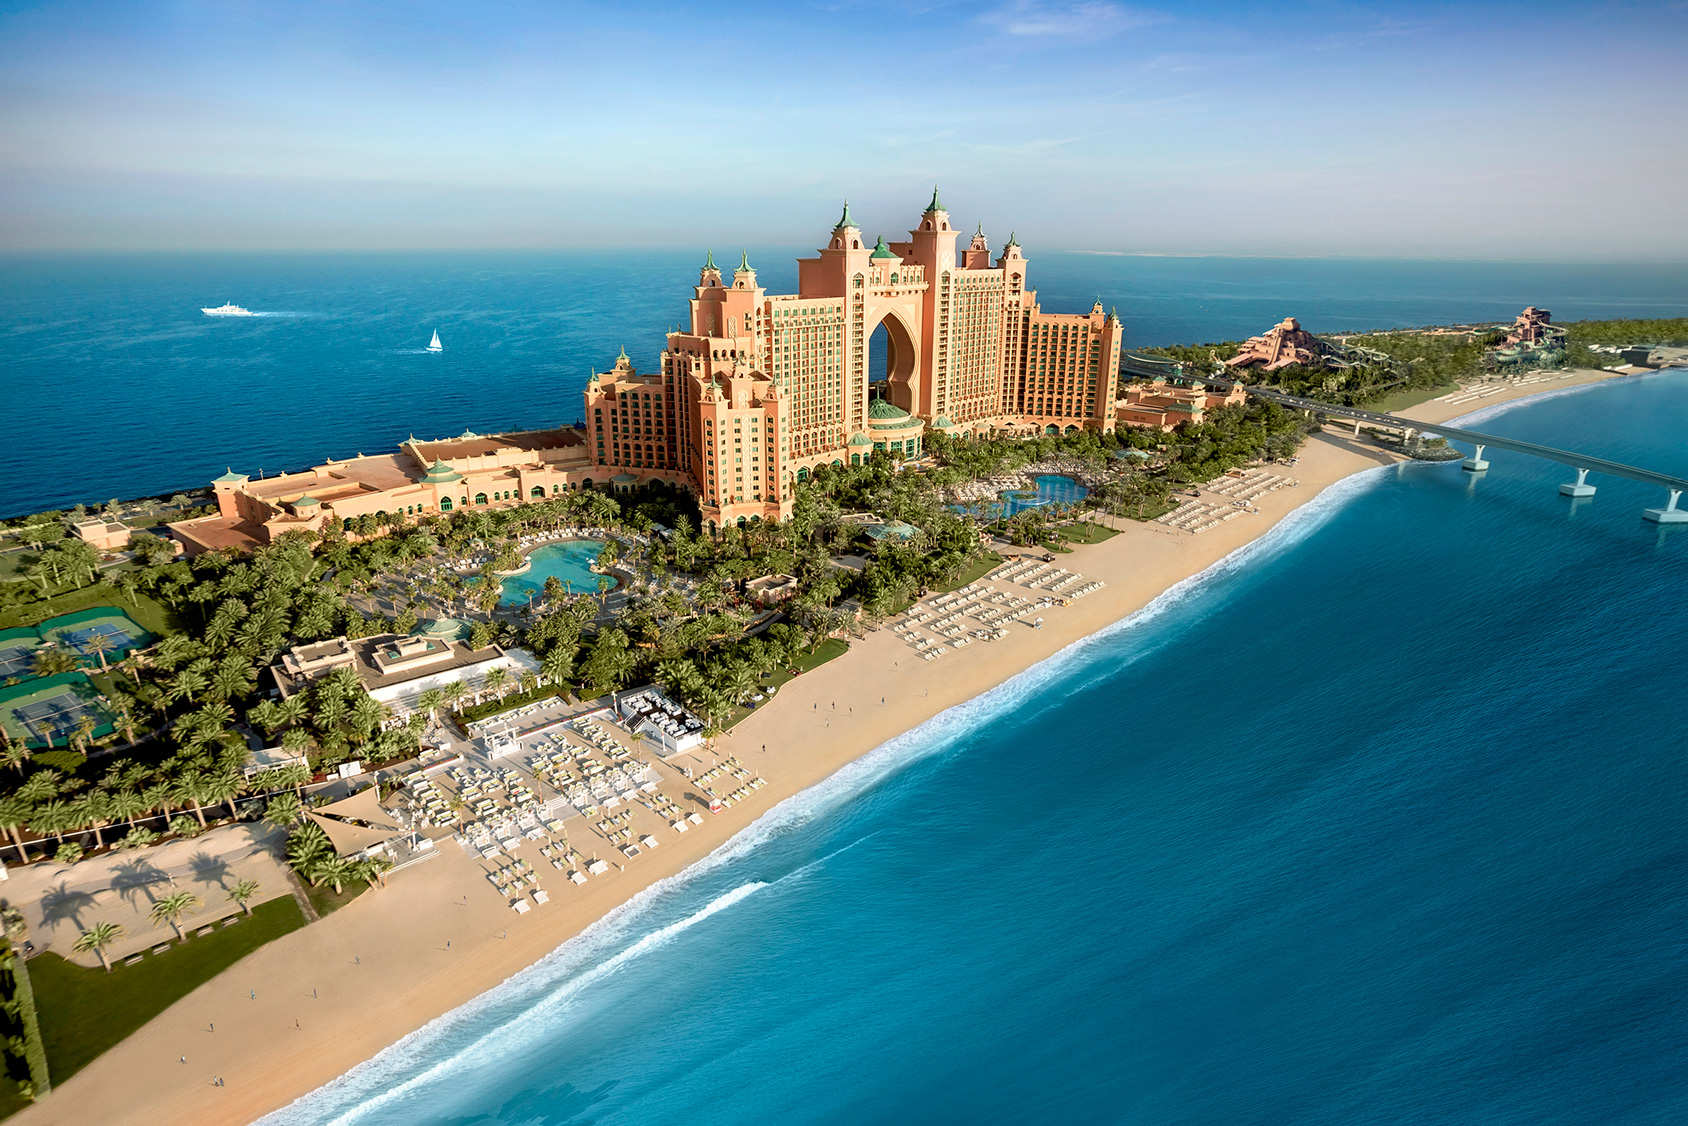 Atlantis The Palm where to get married in the middle east